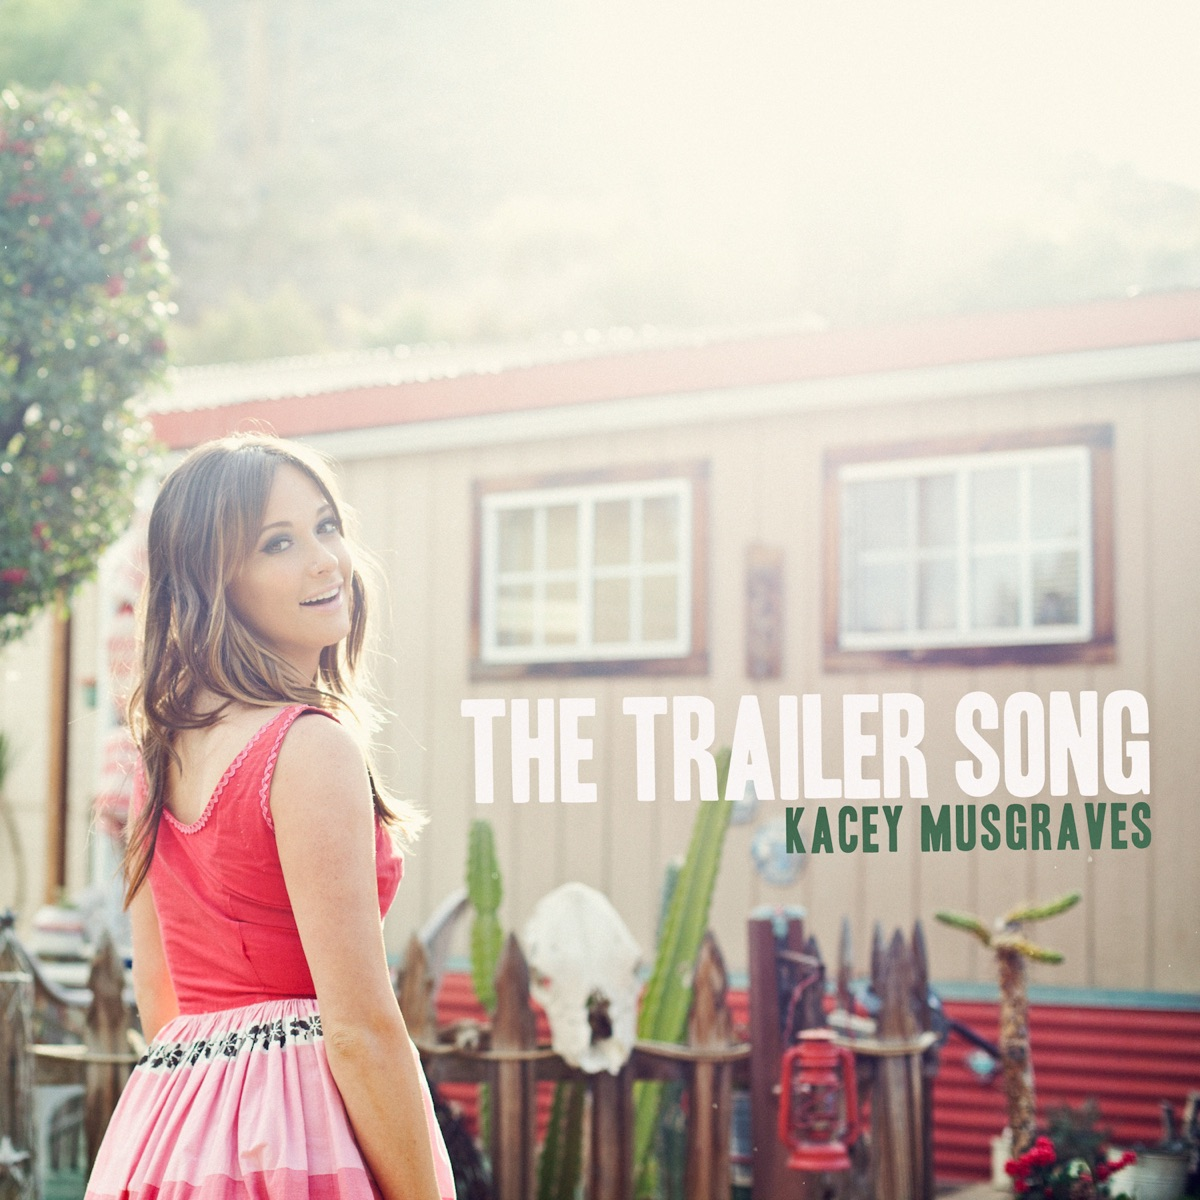 The Trailer Song - Single Album Cover by Kacey Musgraves